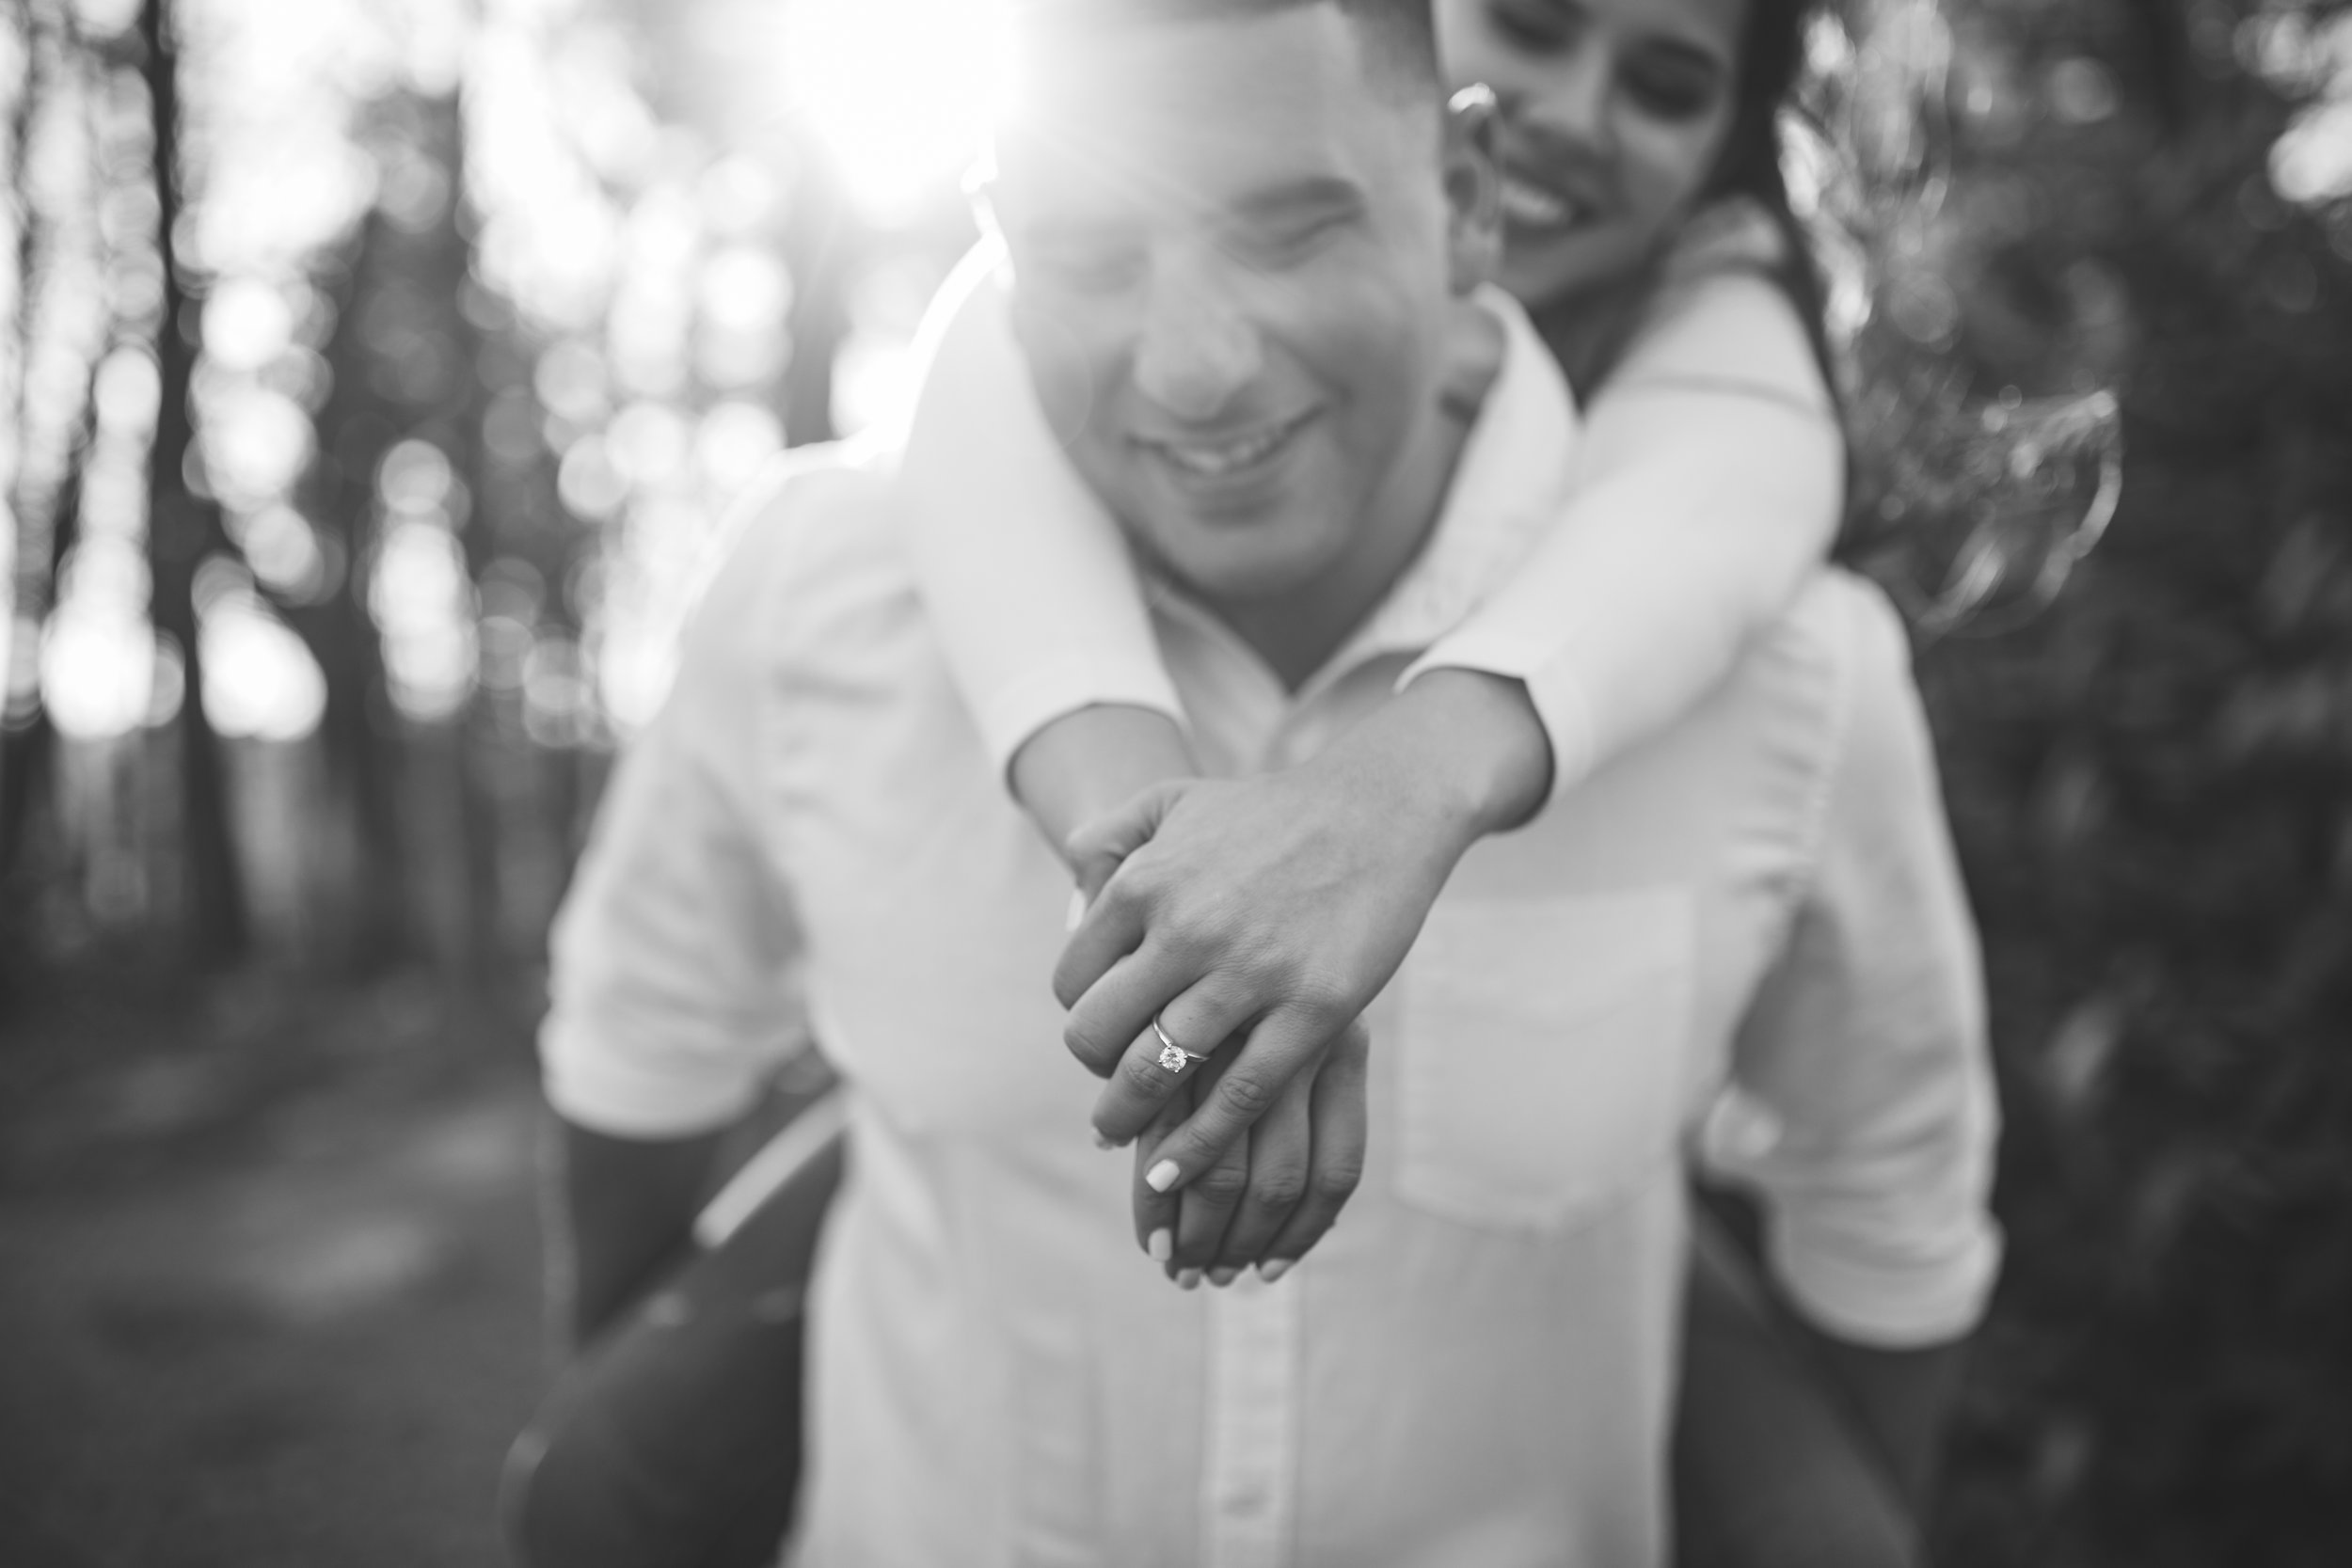 Engagement Session by Revival Photography North Carolina Based Wedding Photographers Husband and Wife Team www.revivalphotography.com